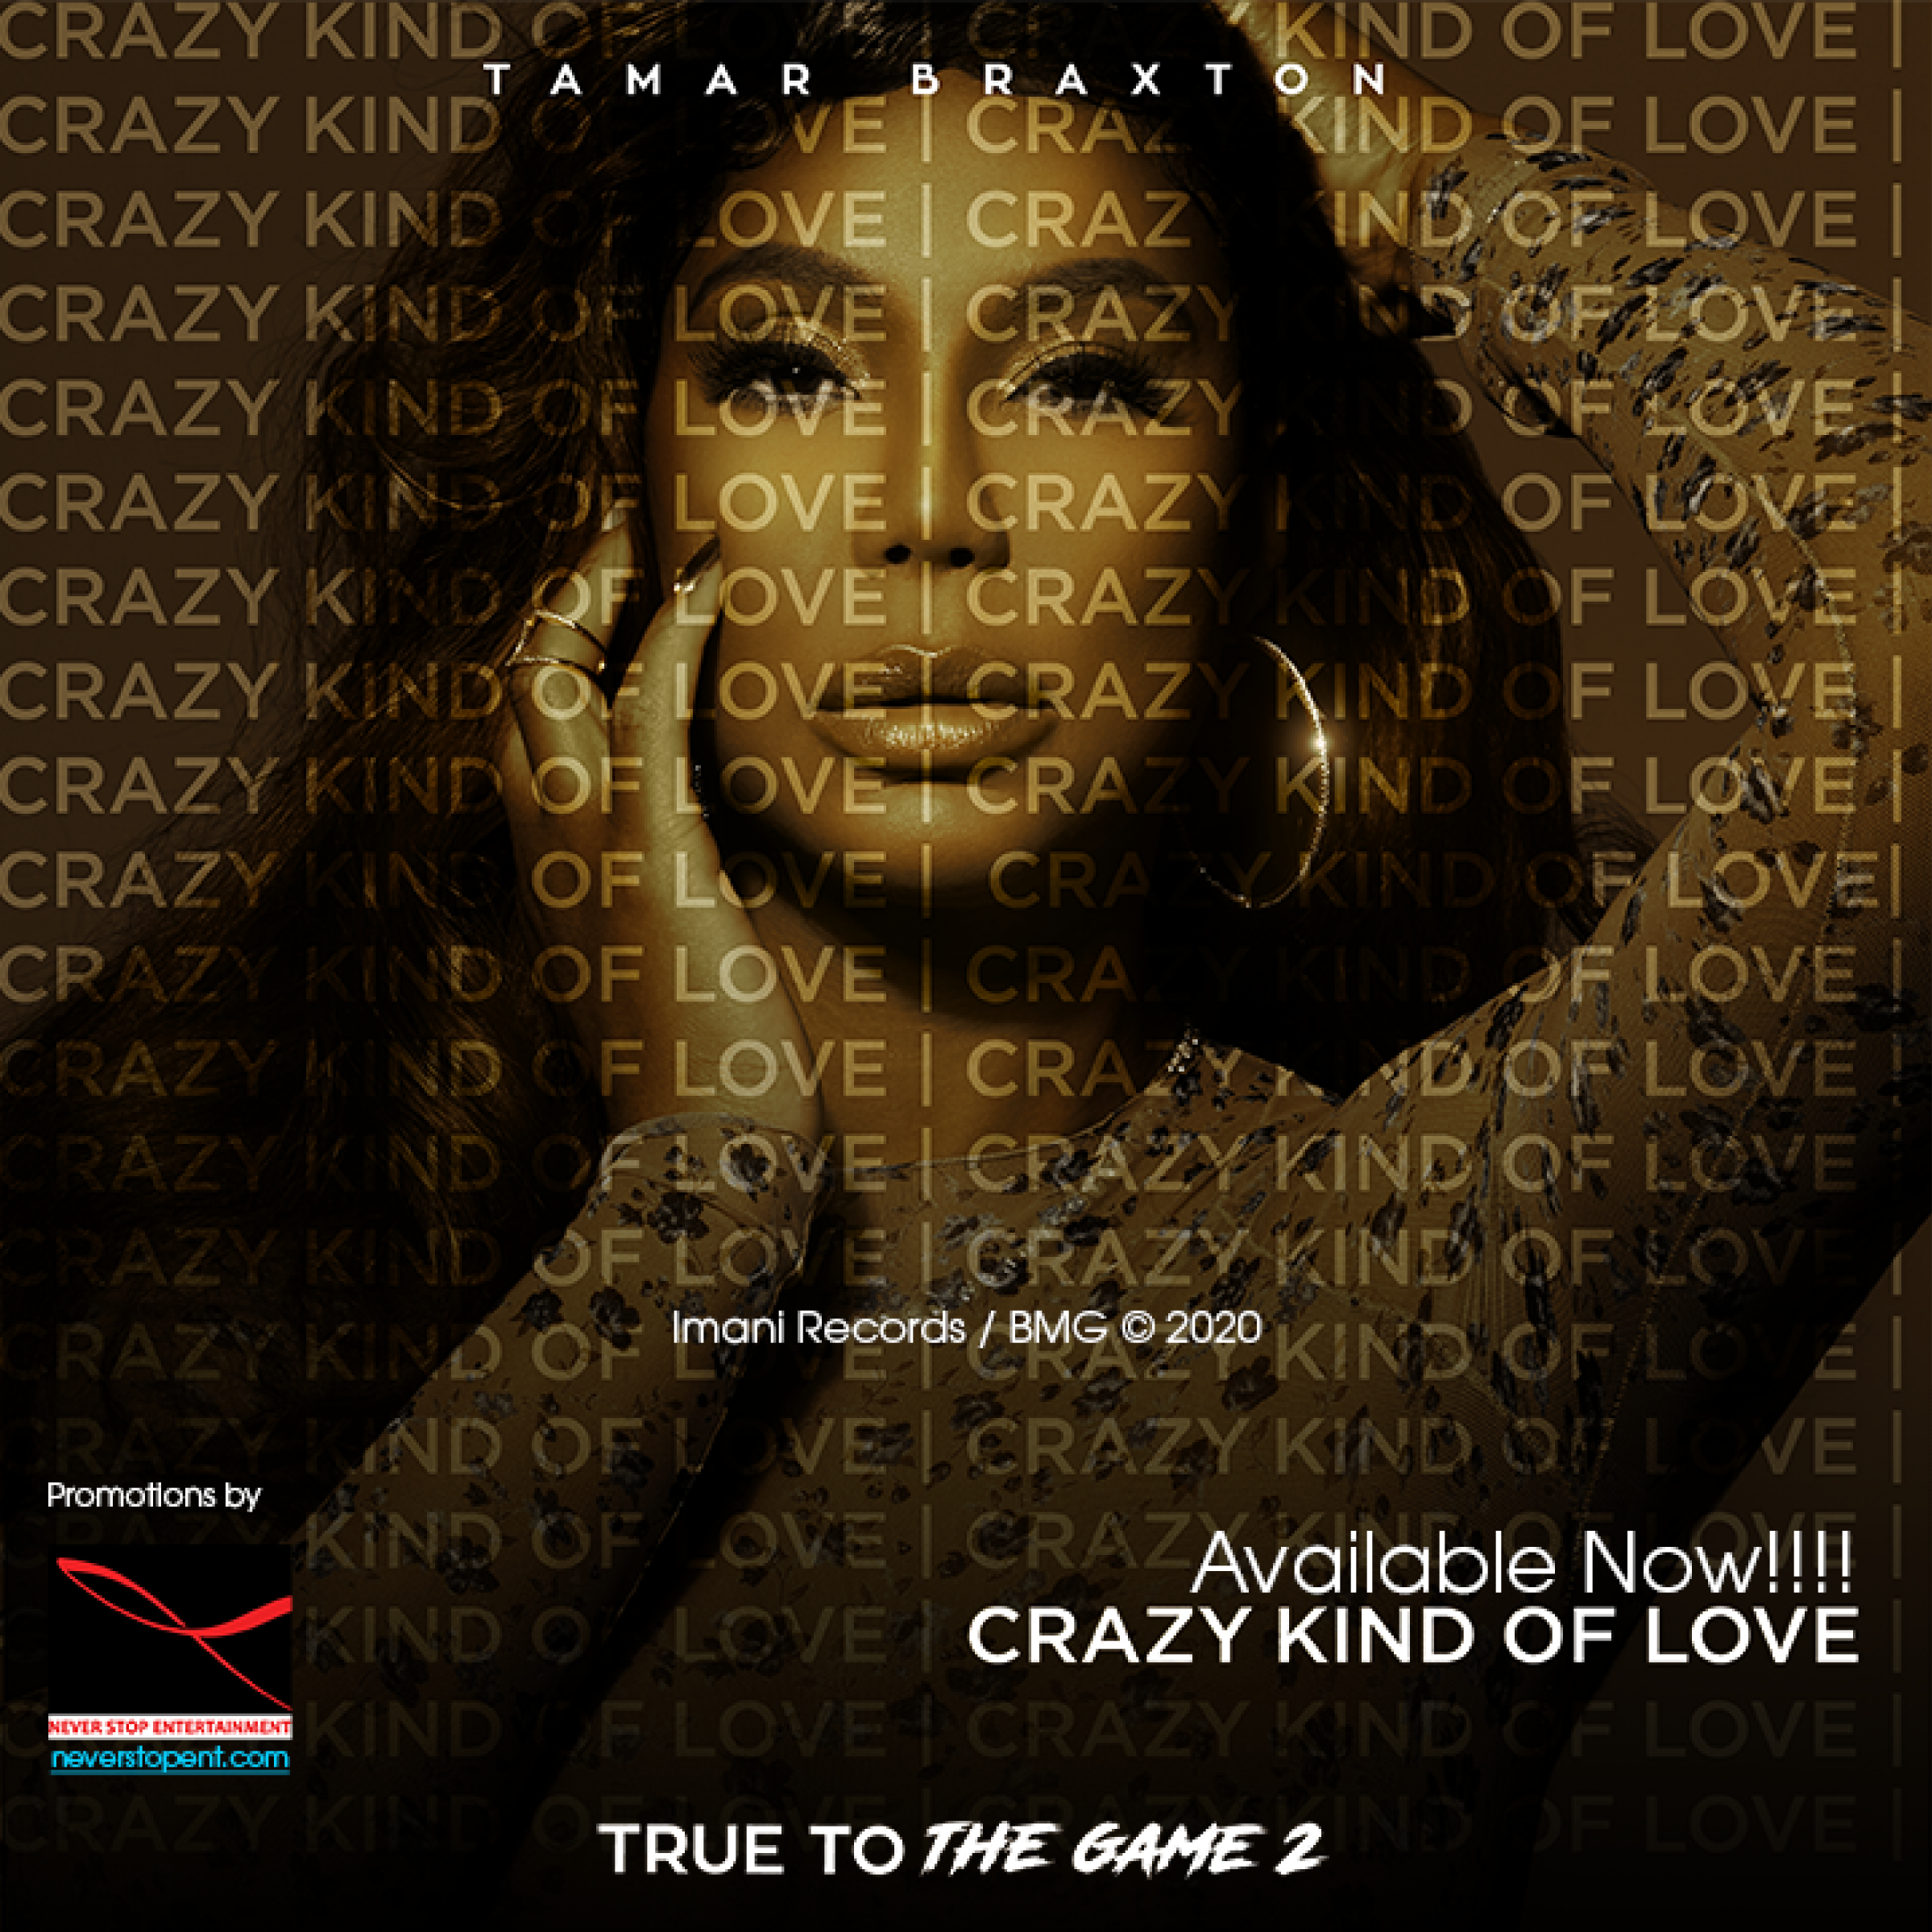 gallery/tamar braxton crazy kind of love an